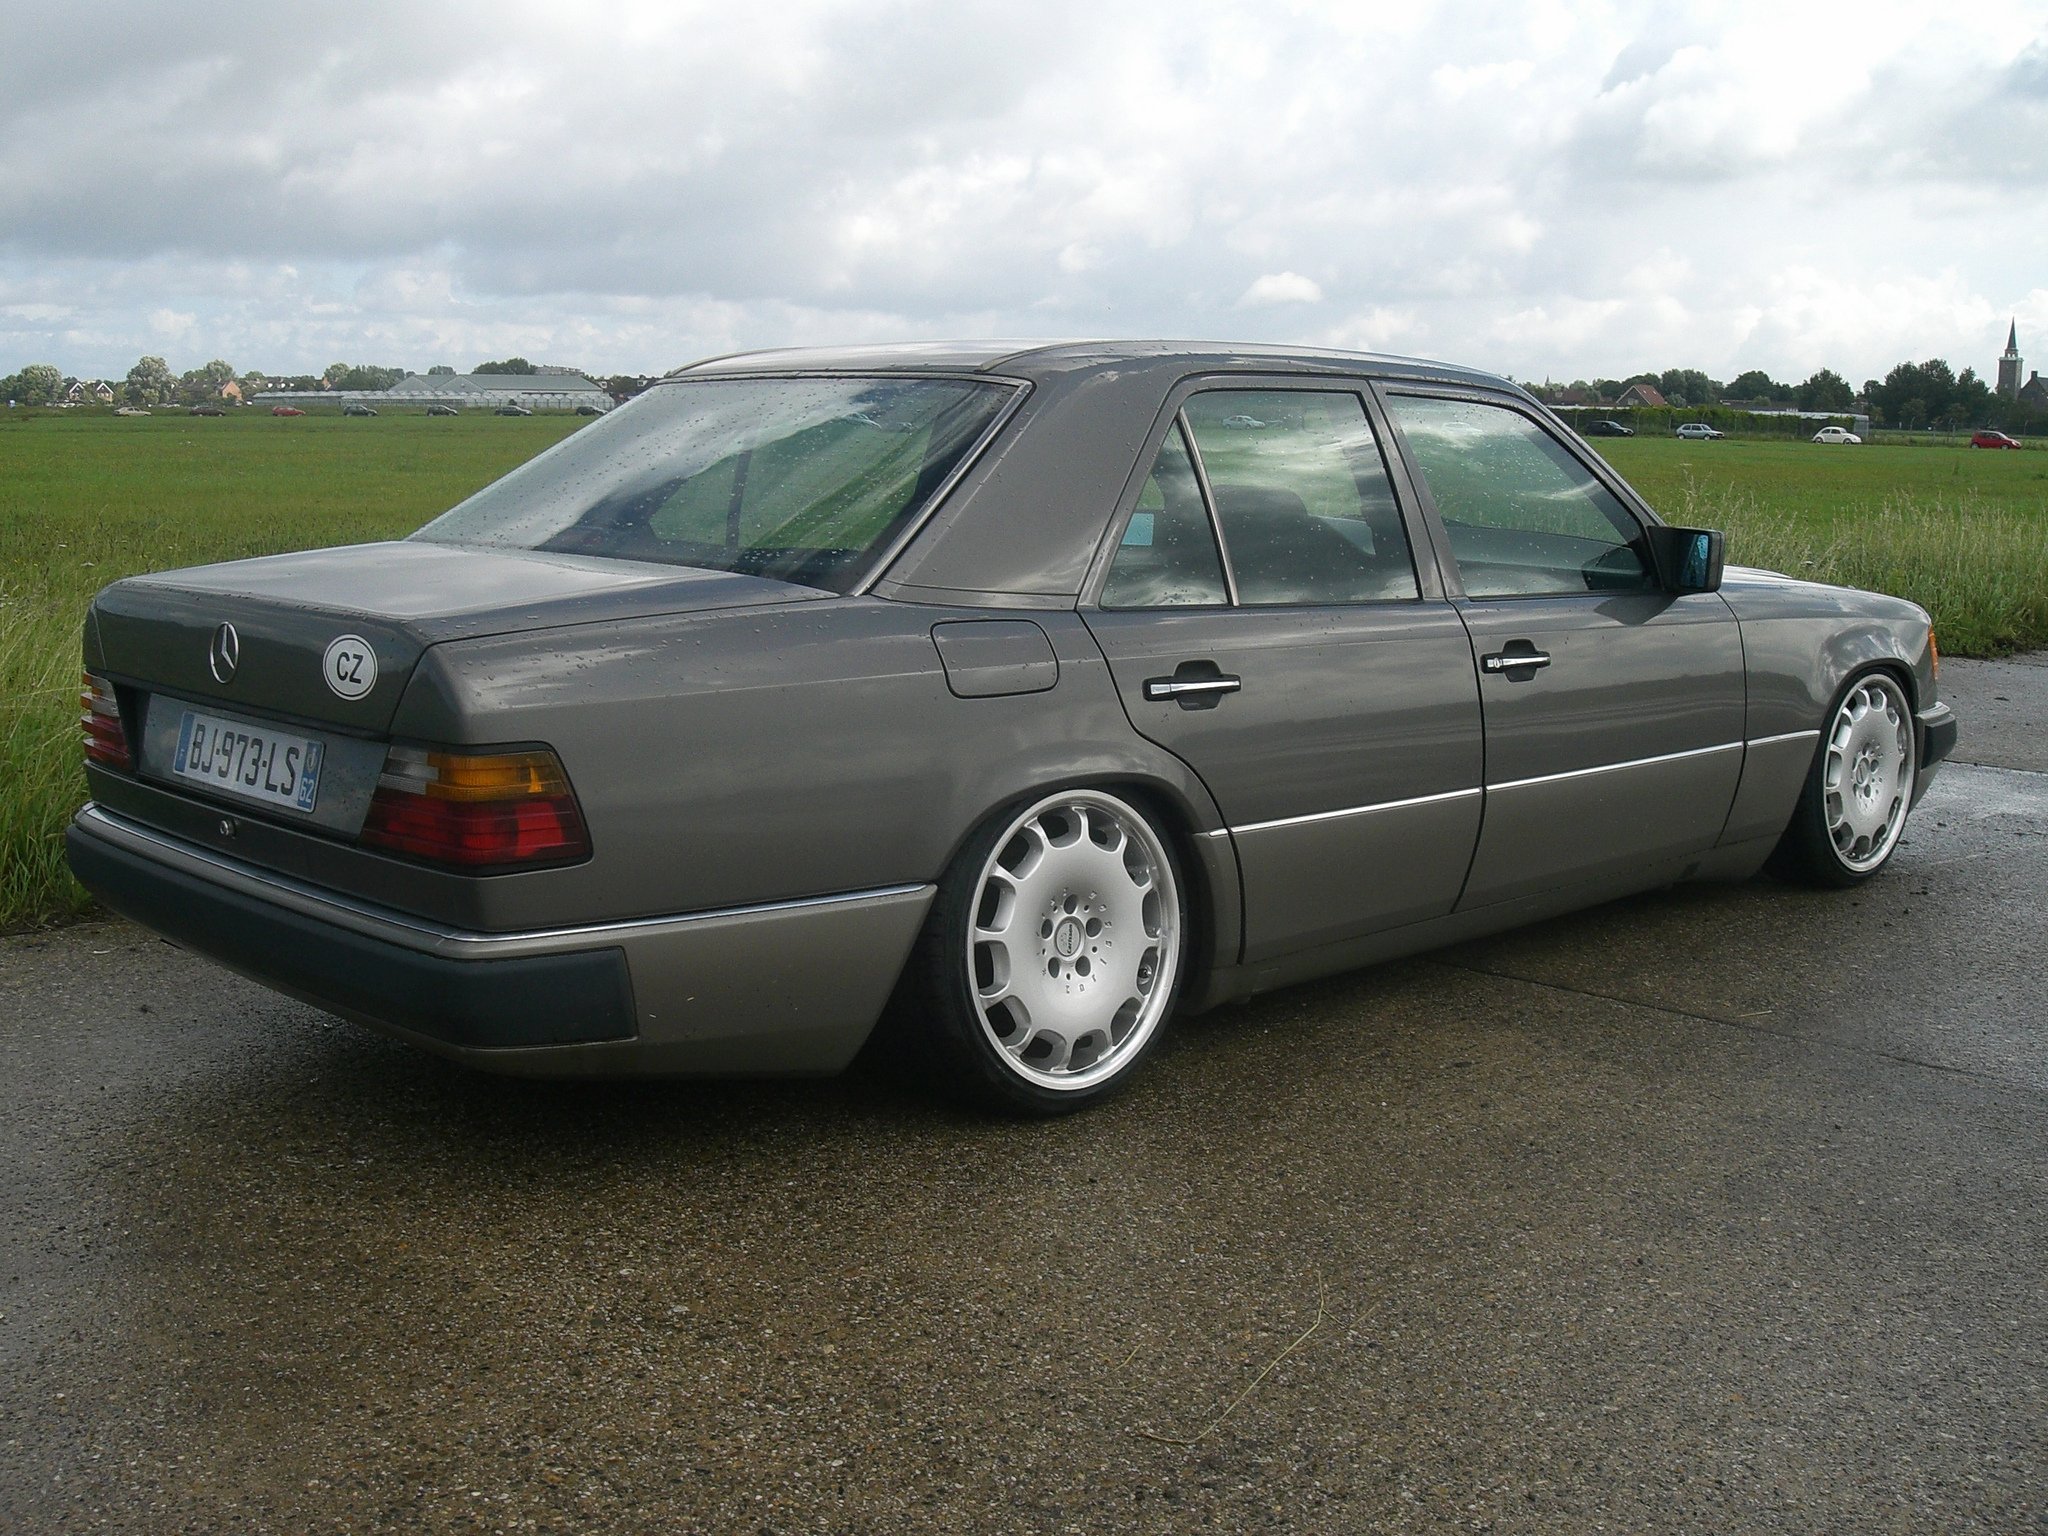 Mercedes benz w124 tuning 9 tuning for Mercedes benz w124 tuning